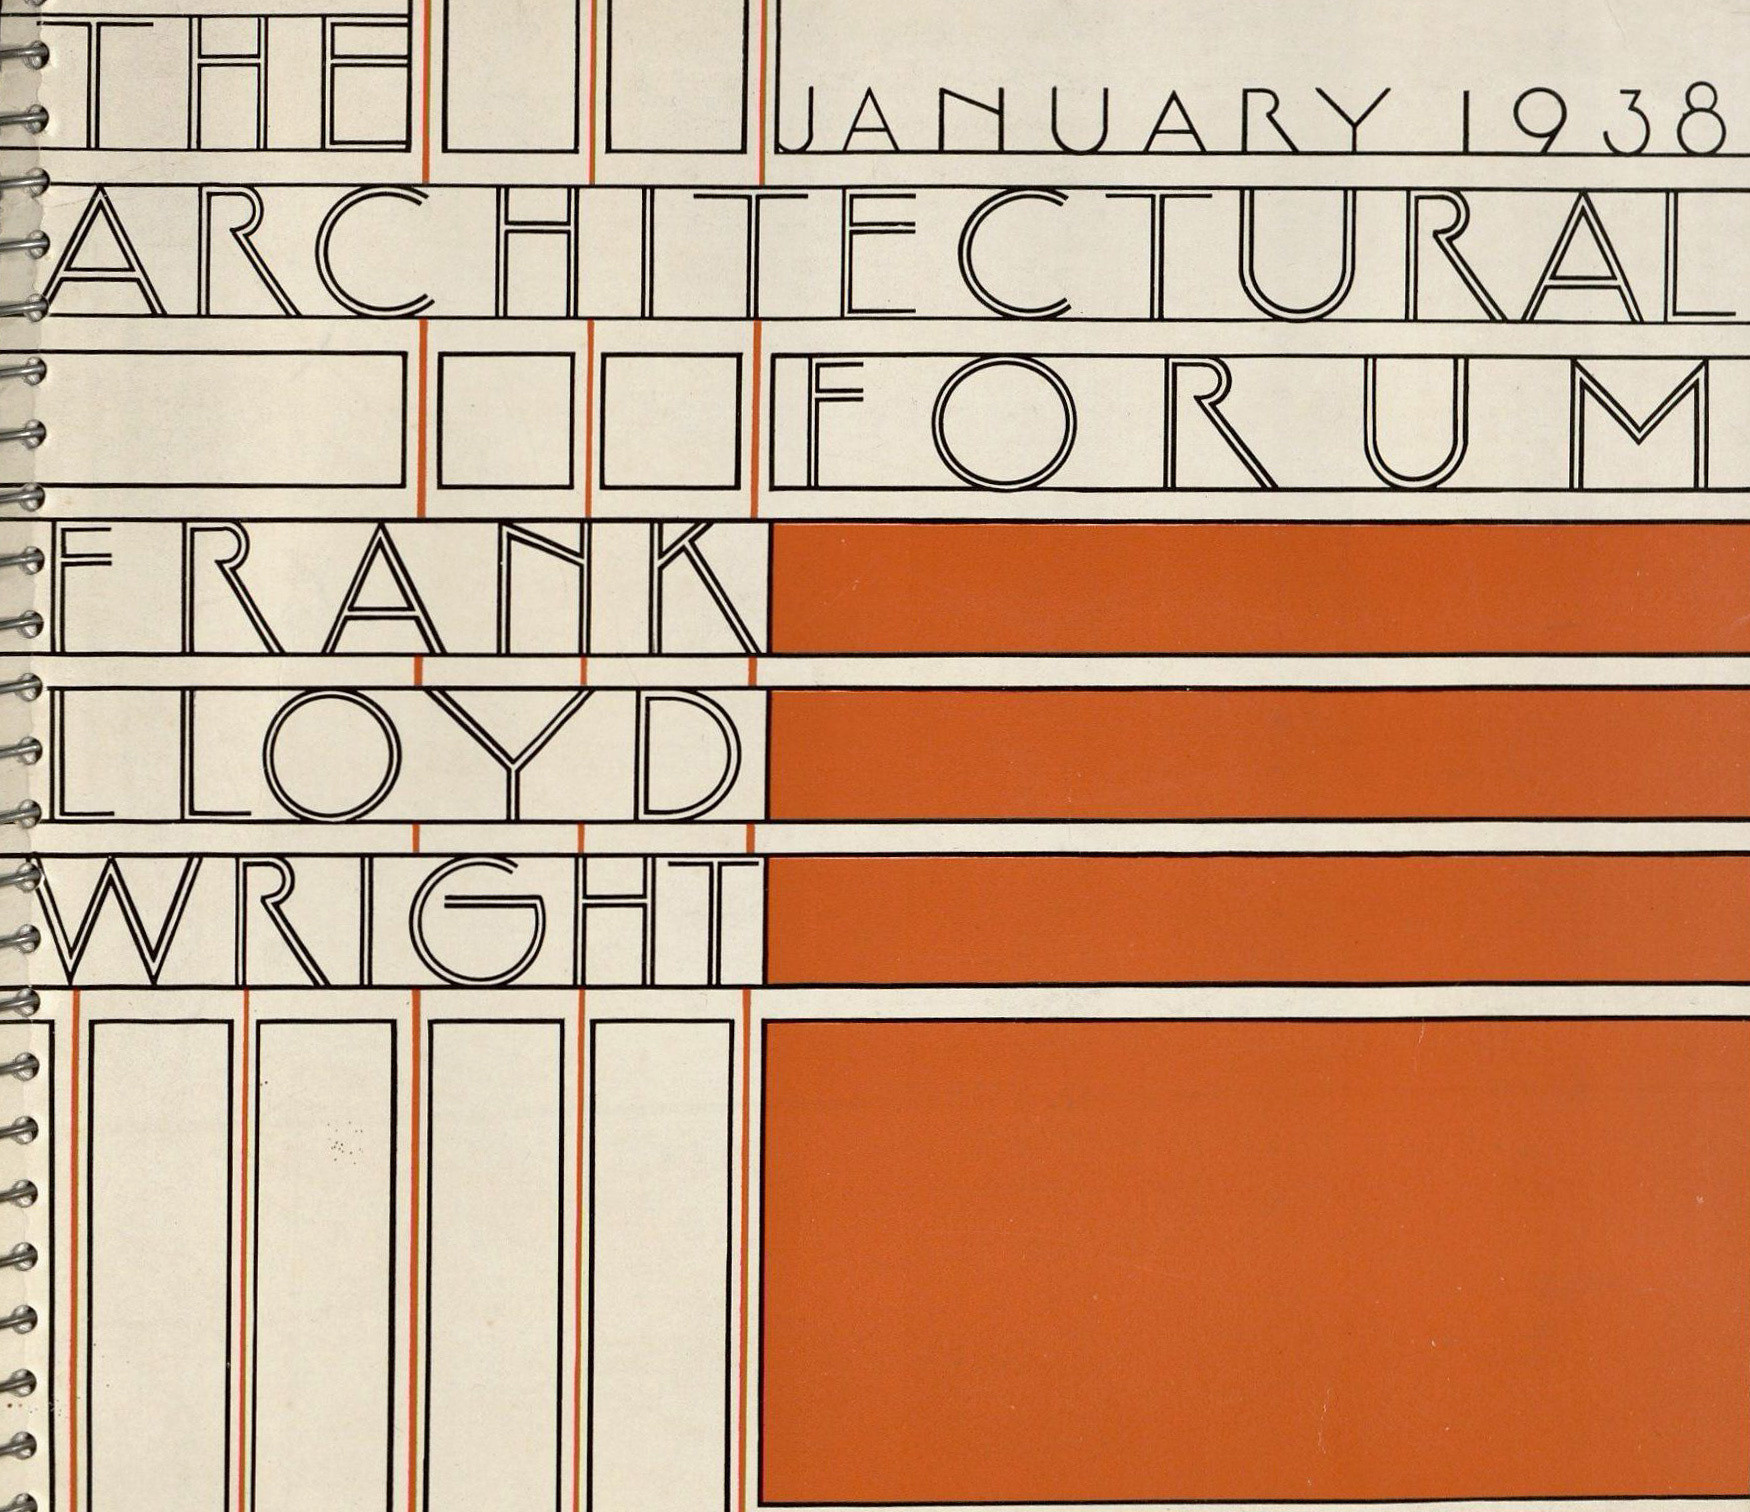 Detail of the cover of Architectural Forum vol. 68, no. 1 (January 1938)